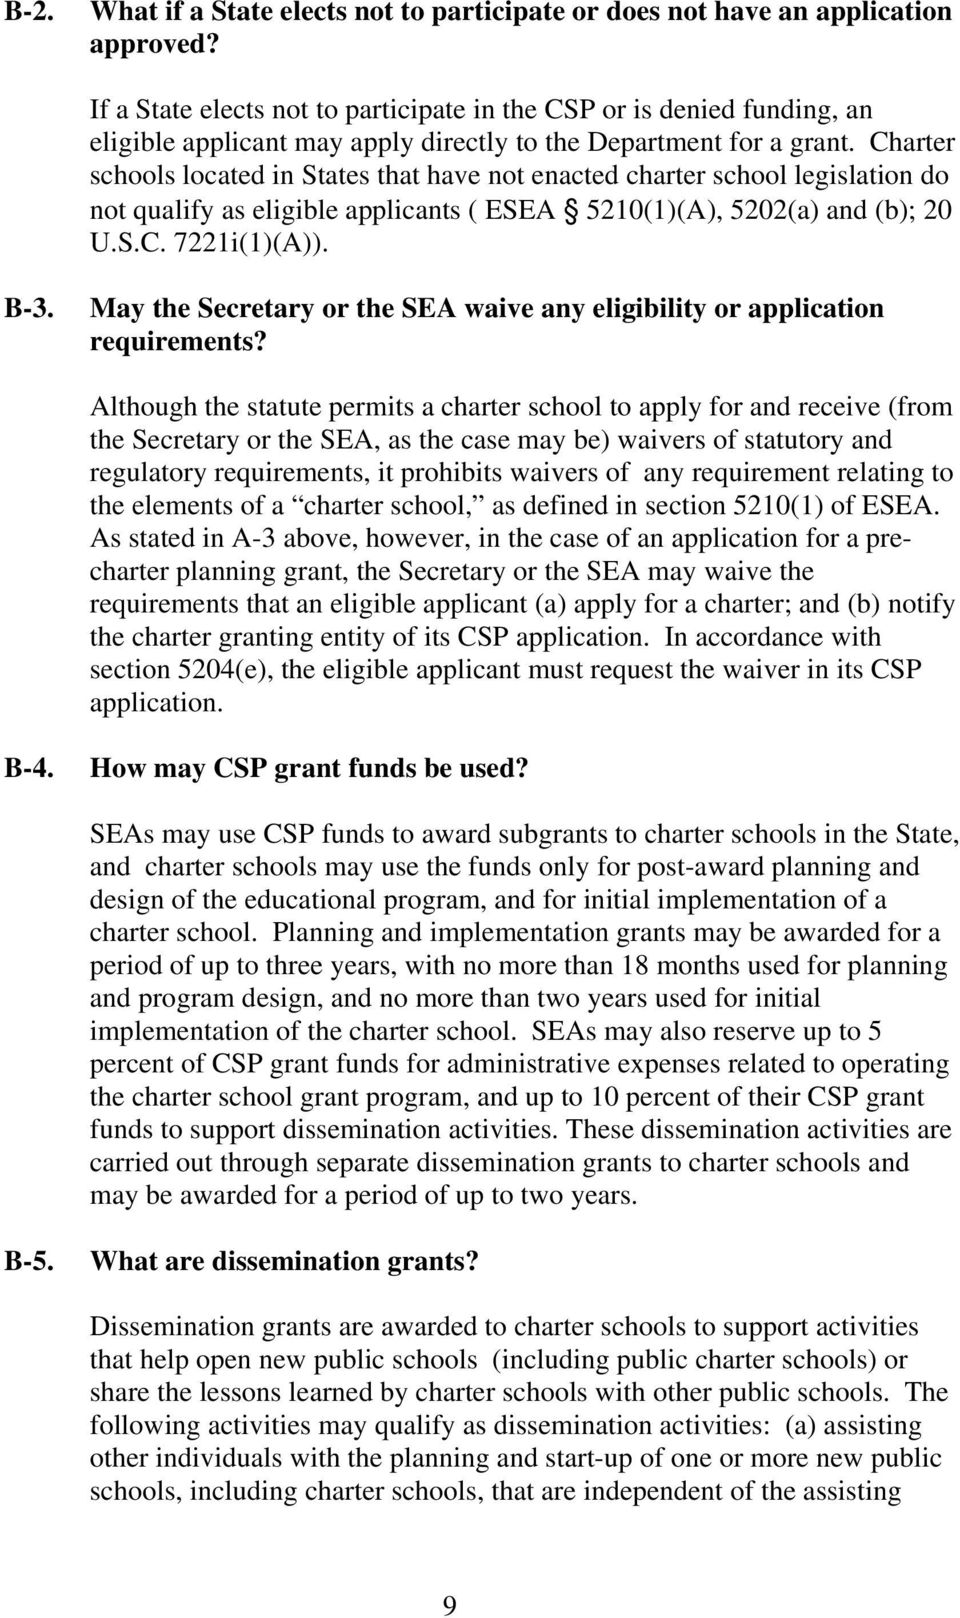 Charter schools located in States that have not enacted charter school legislation do not qualify as eligible applicants ( ESEA 5210(1)(A), 5202(a) and (b); 20 U.S.C. 7221i(1)(A)). B-3.